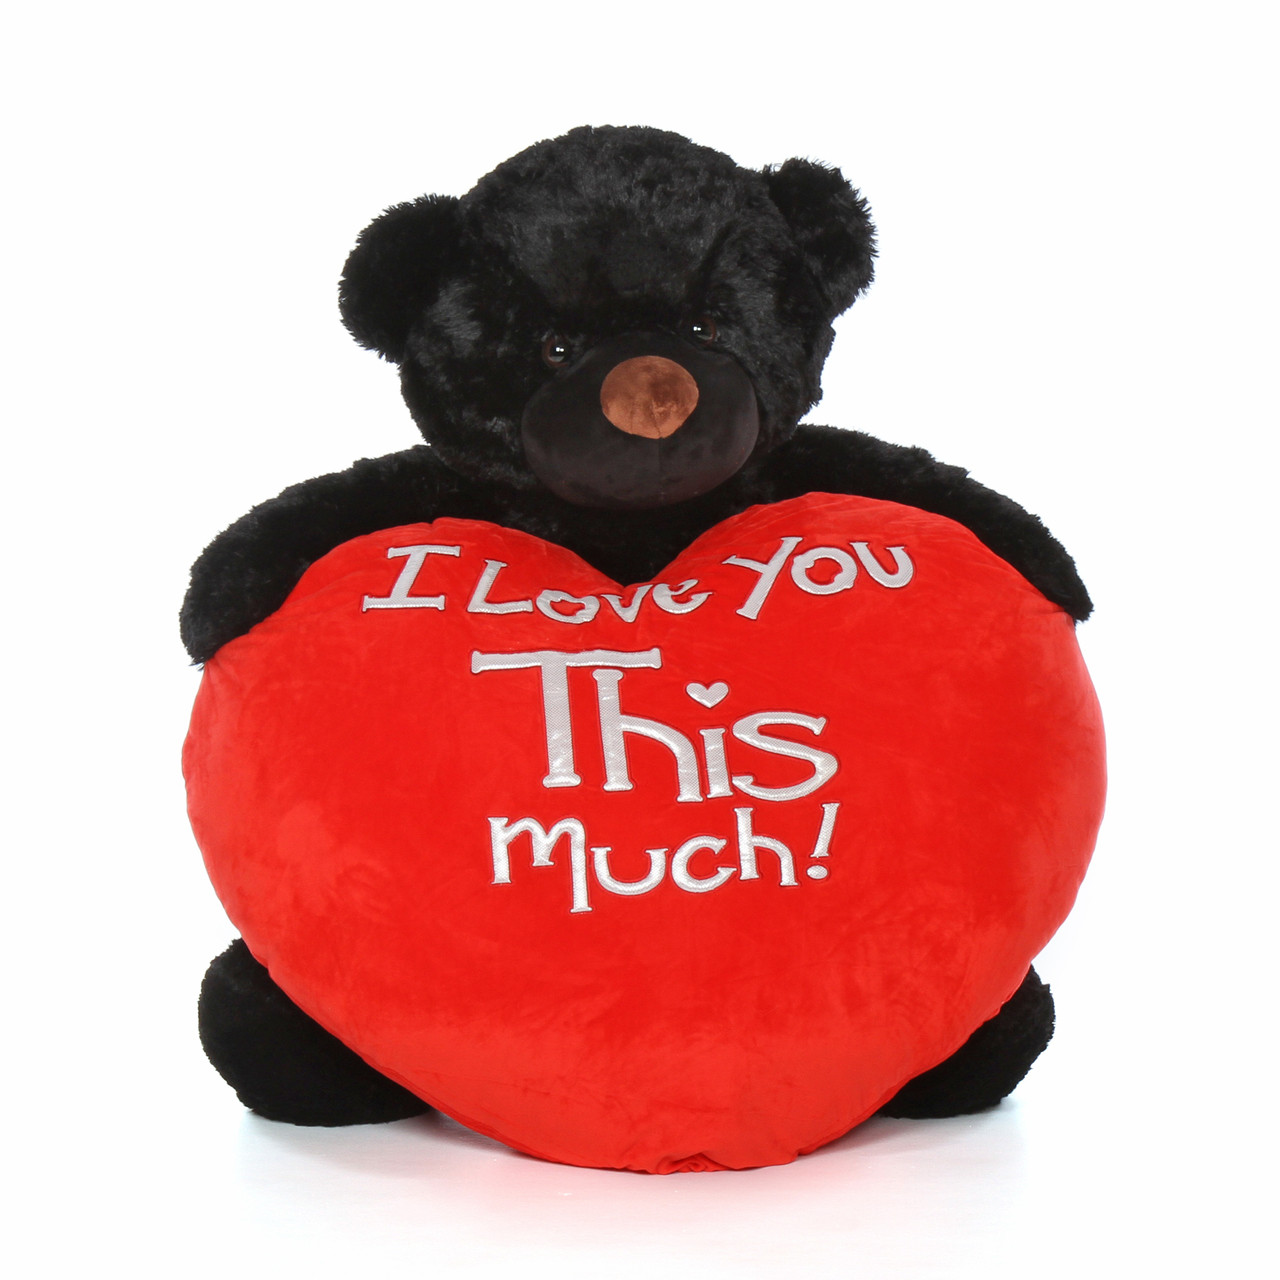 4ft cuddles life size valentines day gift giant teddy bear black fur red plush heart - Giant Teddy Bear For Valentines Day